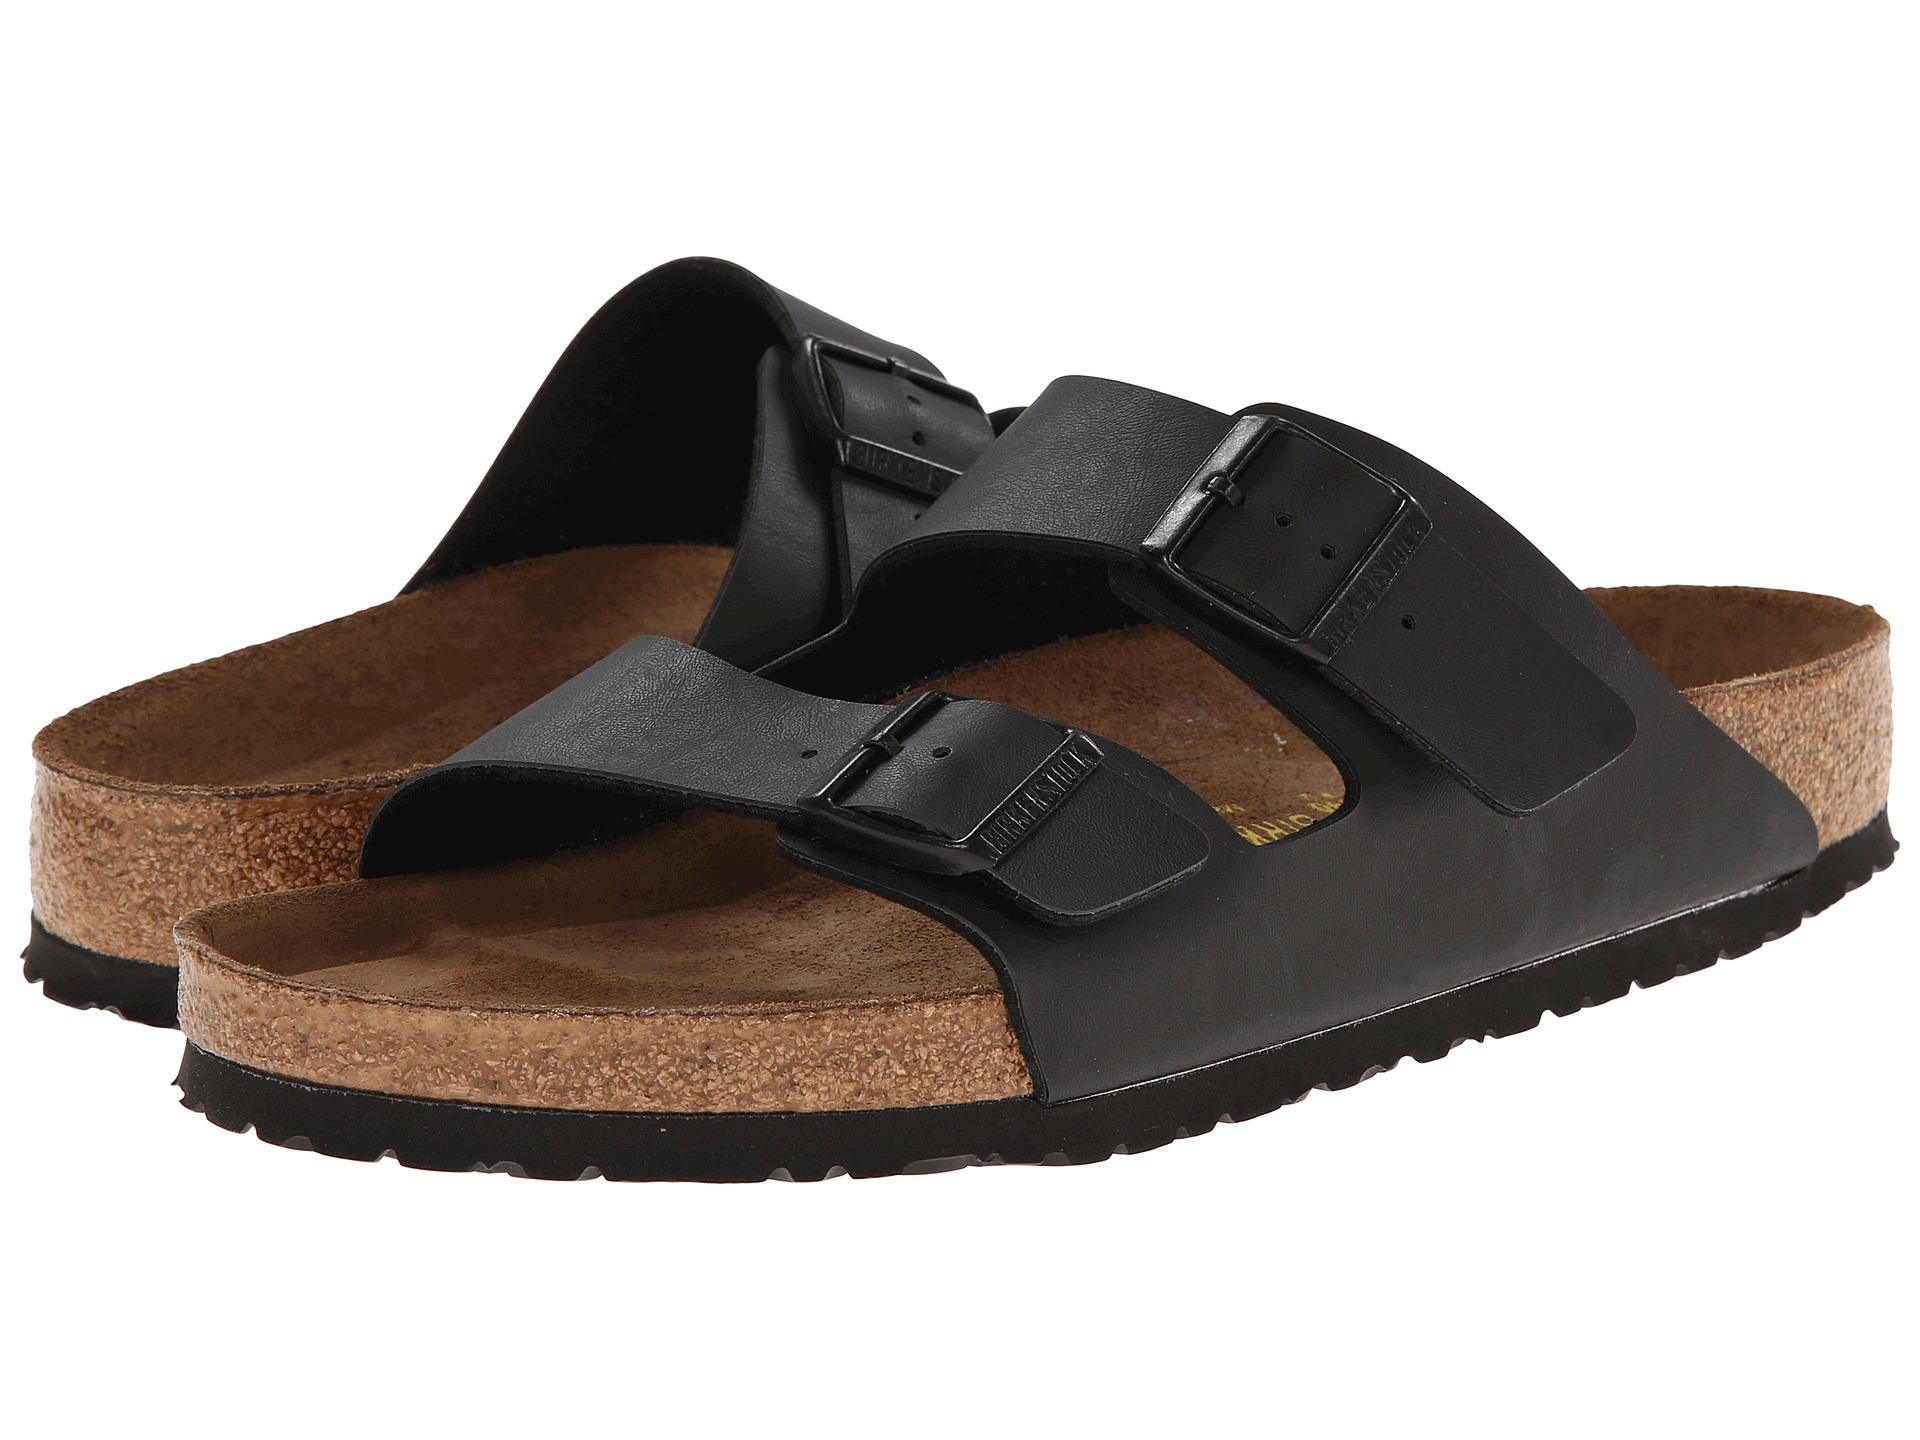 Birkenstock Men's 'Arizona Soft' Sandal